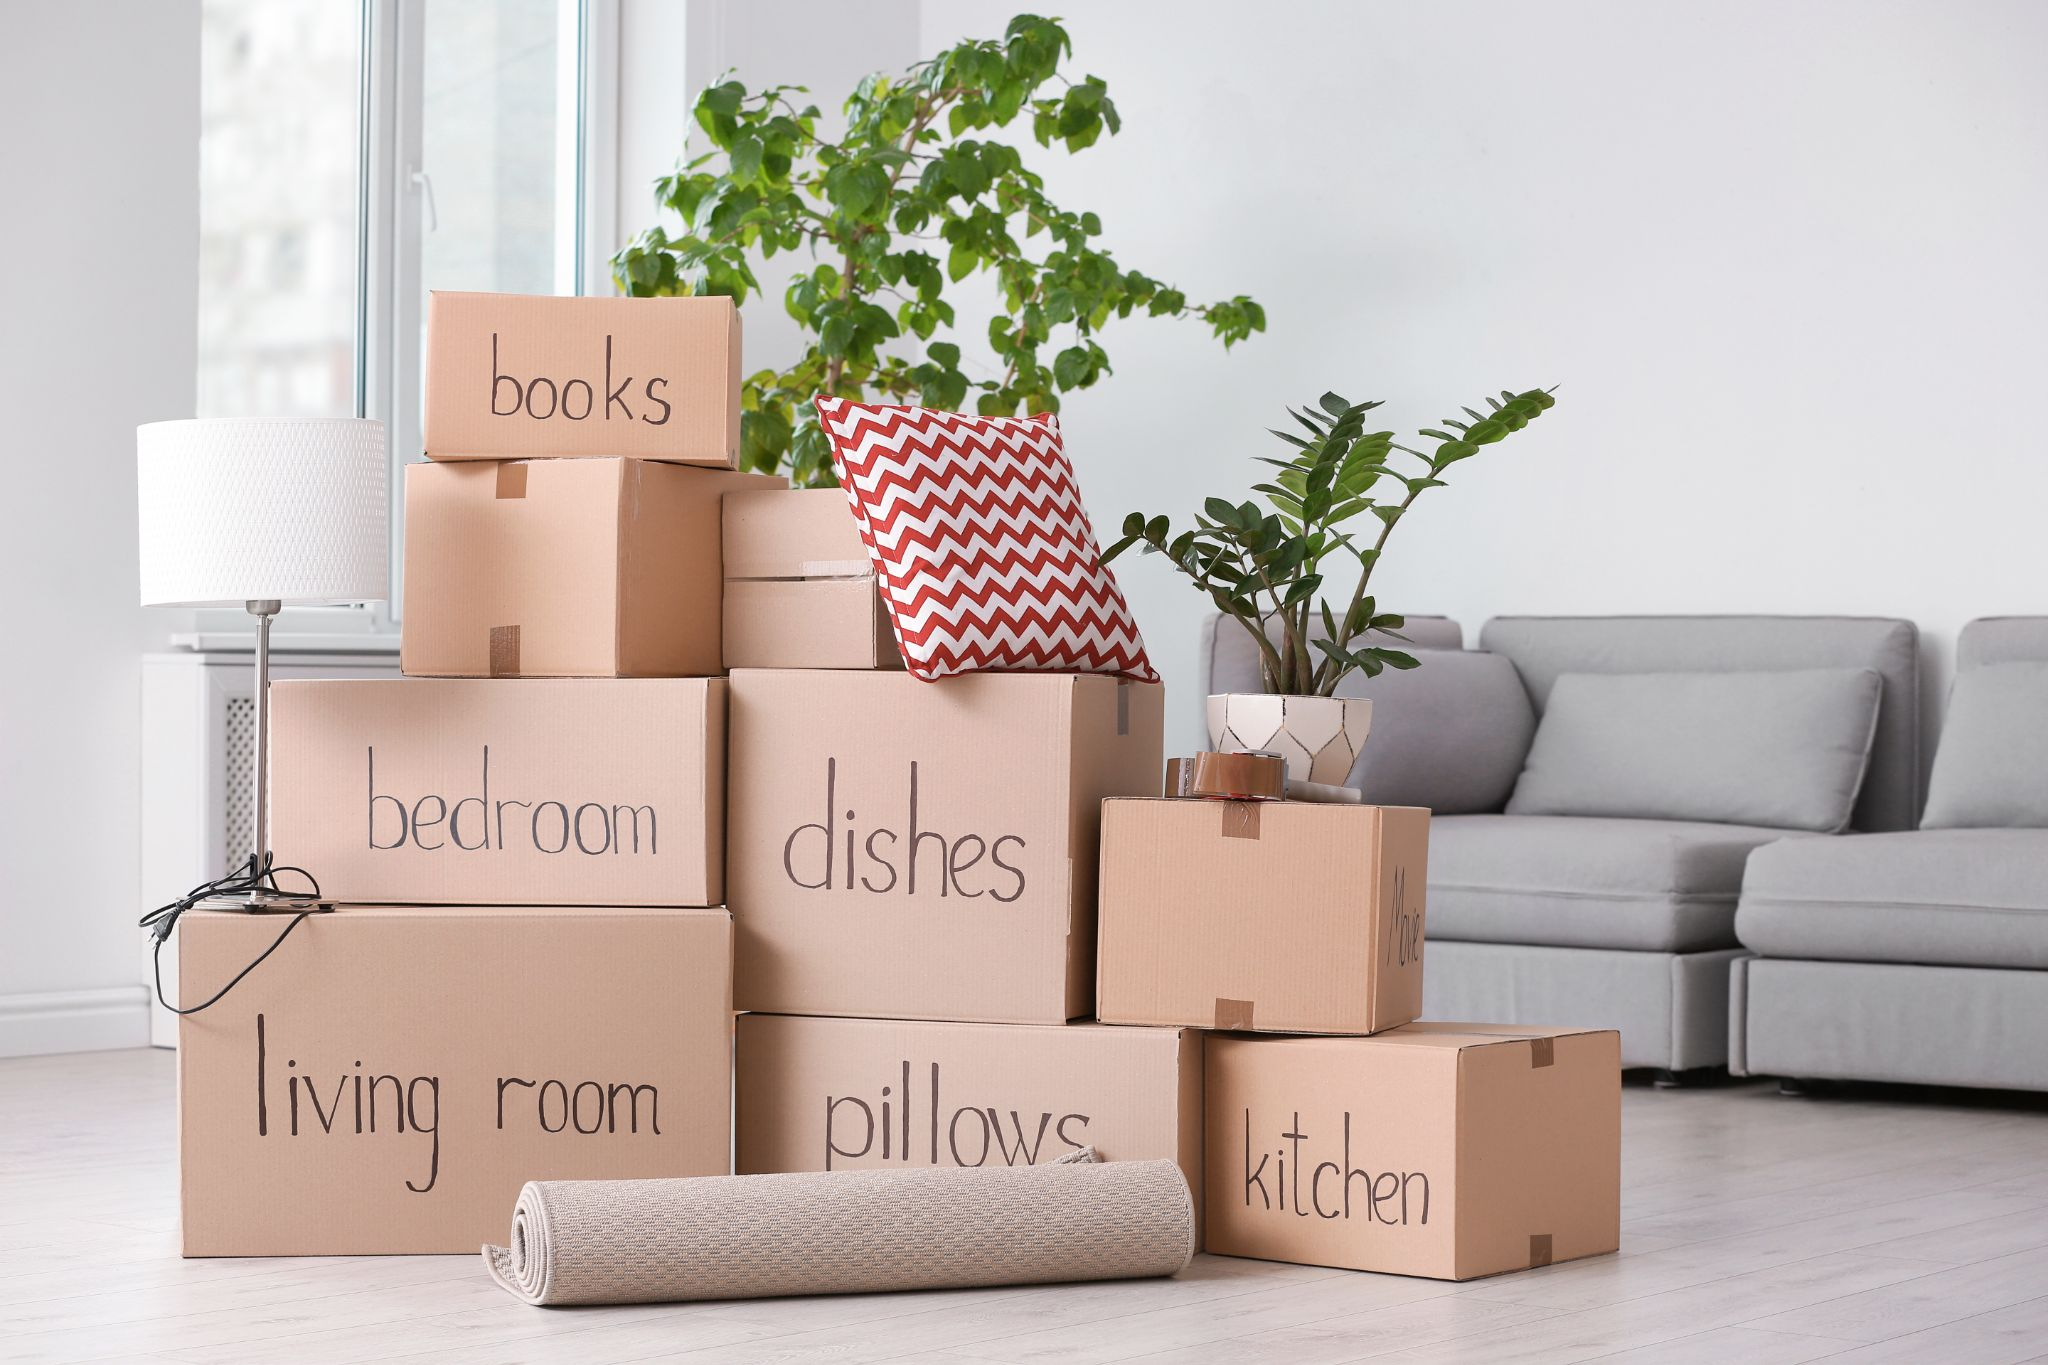 Moving boxes packed by a professional apartment moving company such as Melendez Moving in Chicago, IL.